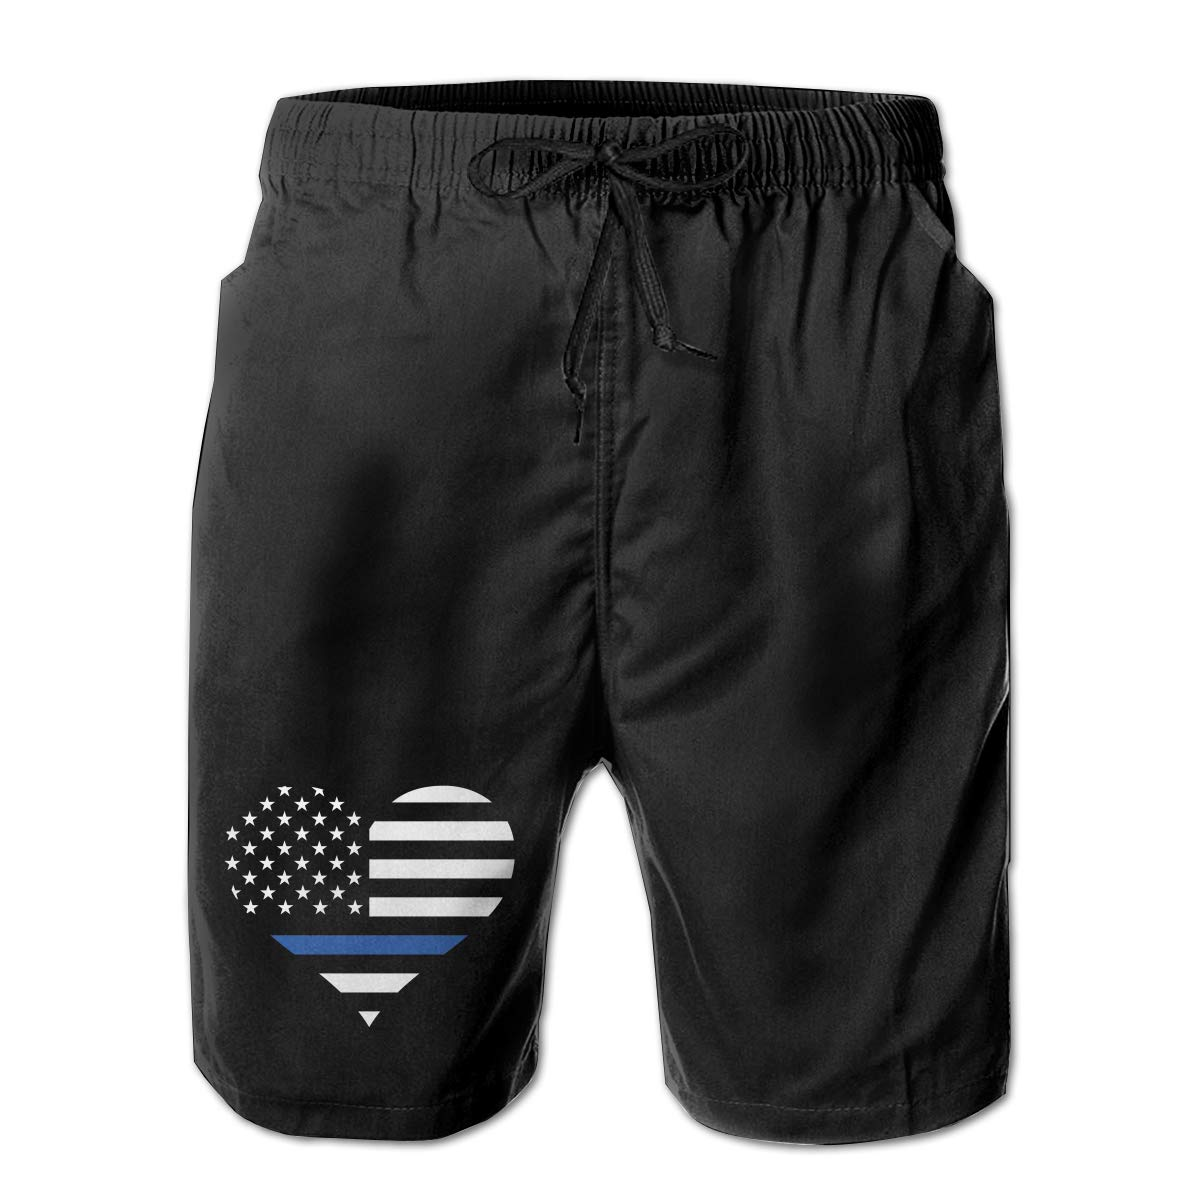 Police and Law Enforcement Thin Blue Line Heart Valentines Heart Man Summer Casual Shorts,Beach Shorts Pocket Shorts